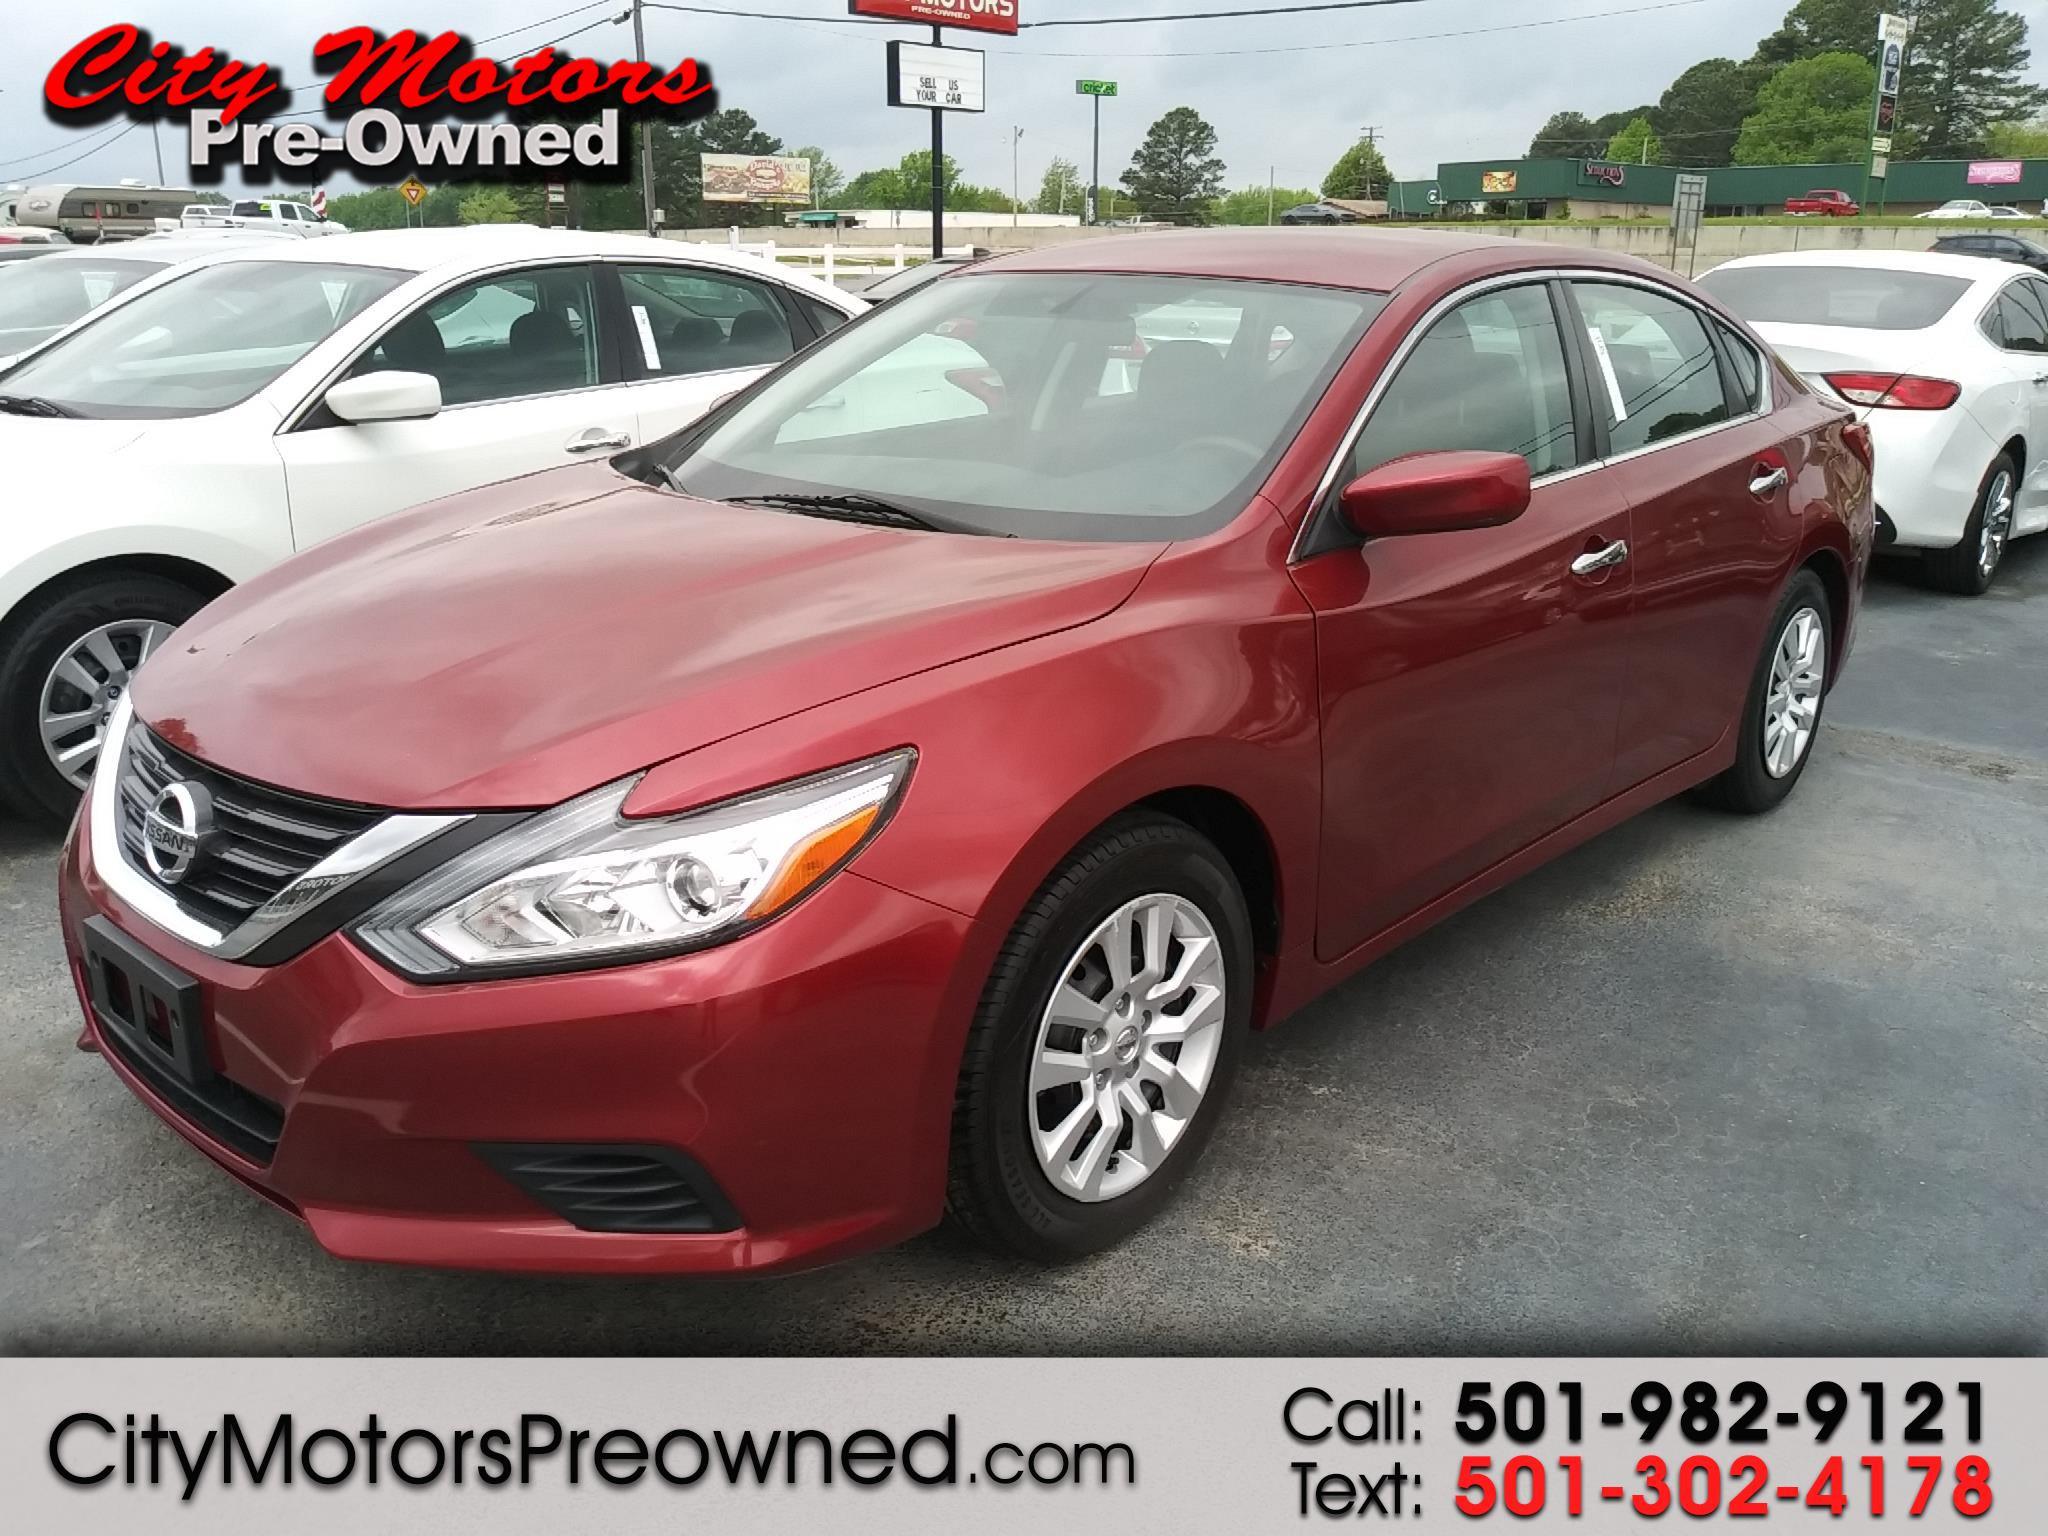 2016 Nissan ALTIMA 2.5 4dr Sdn I4 2.5 S